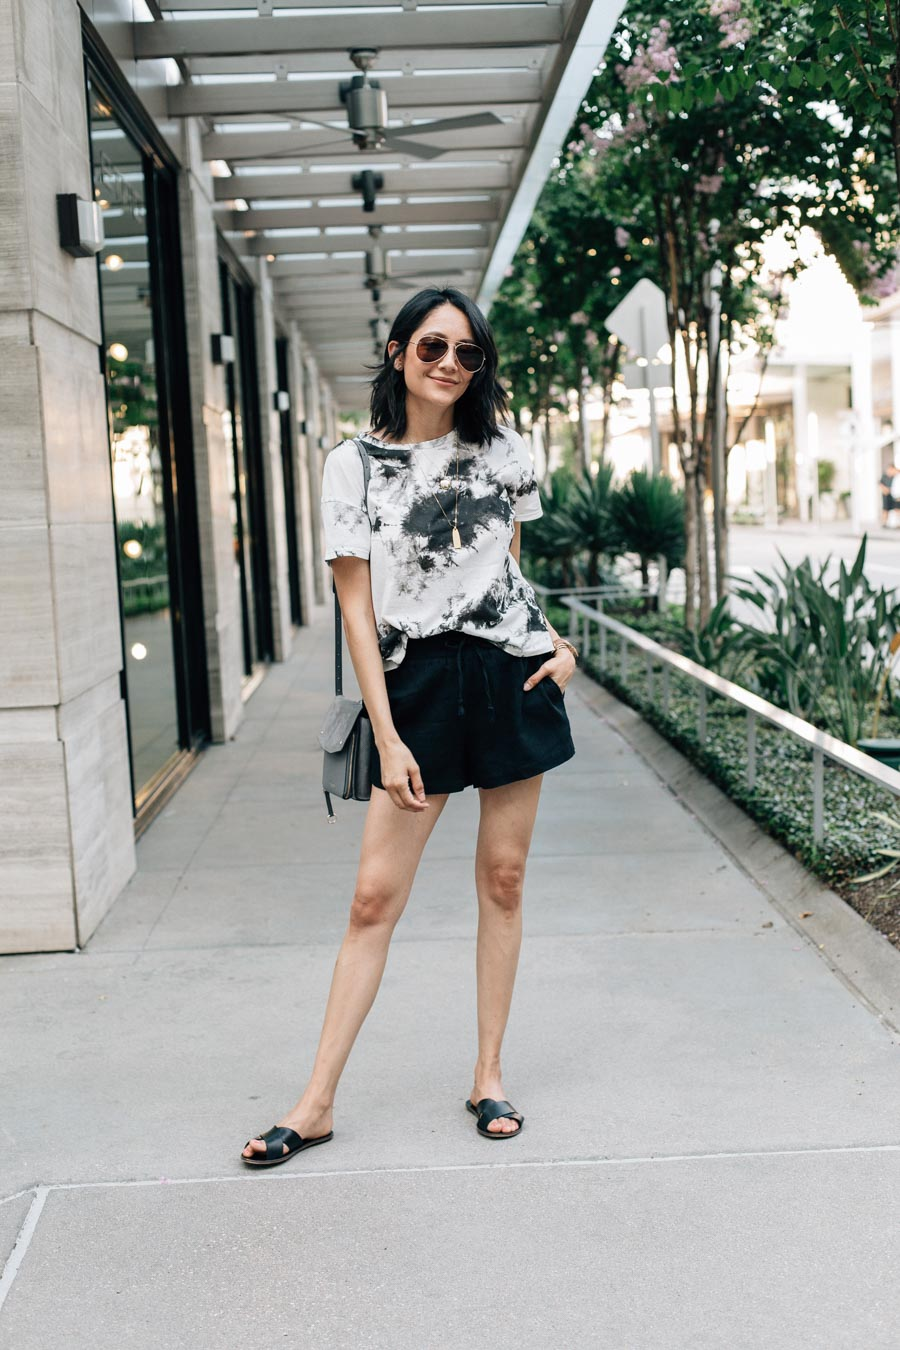 How To Wear The Tie-Dye Trend As A Neutral